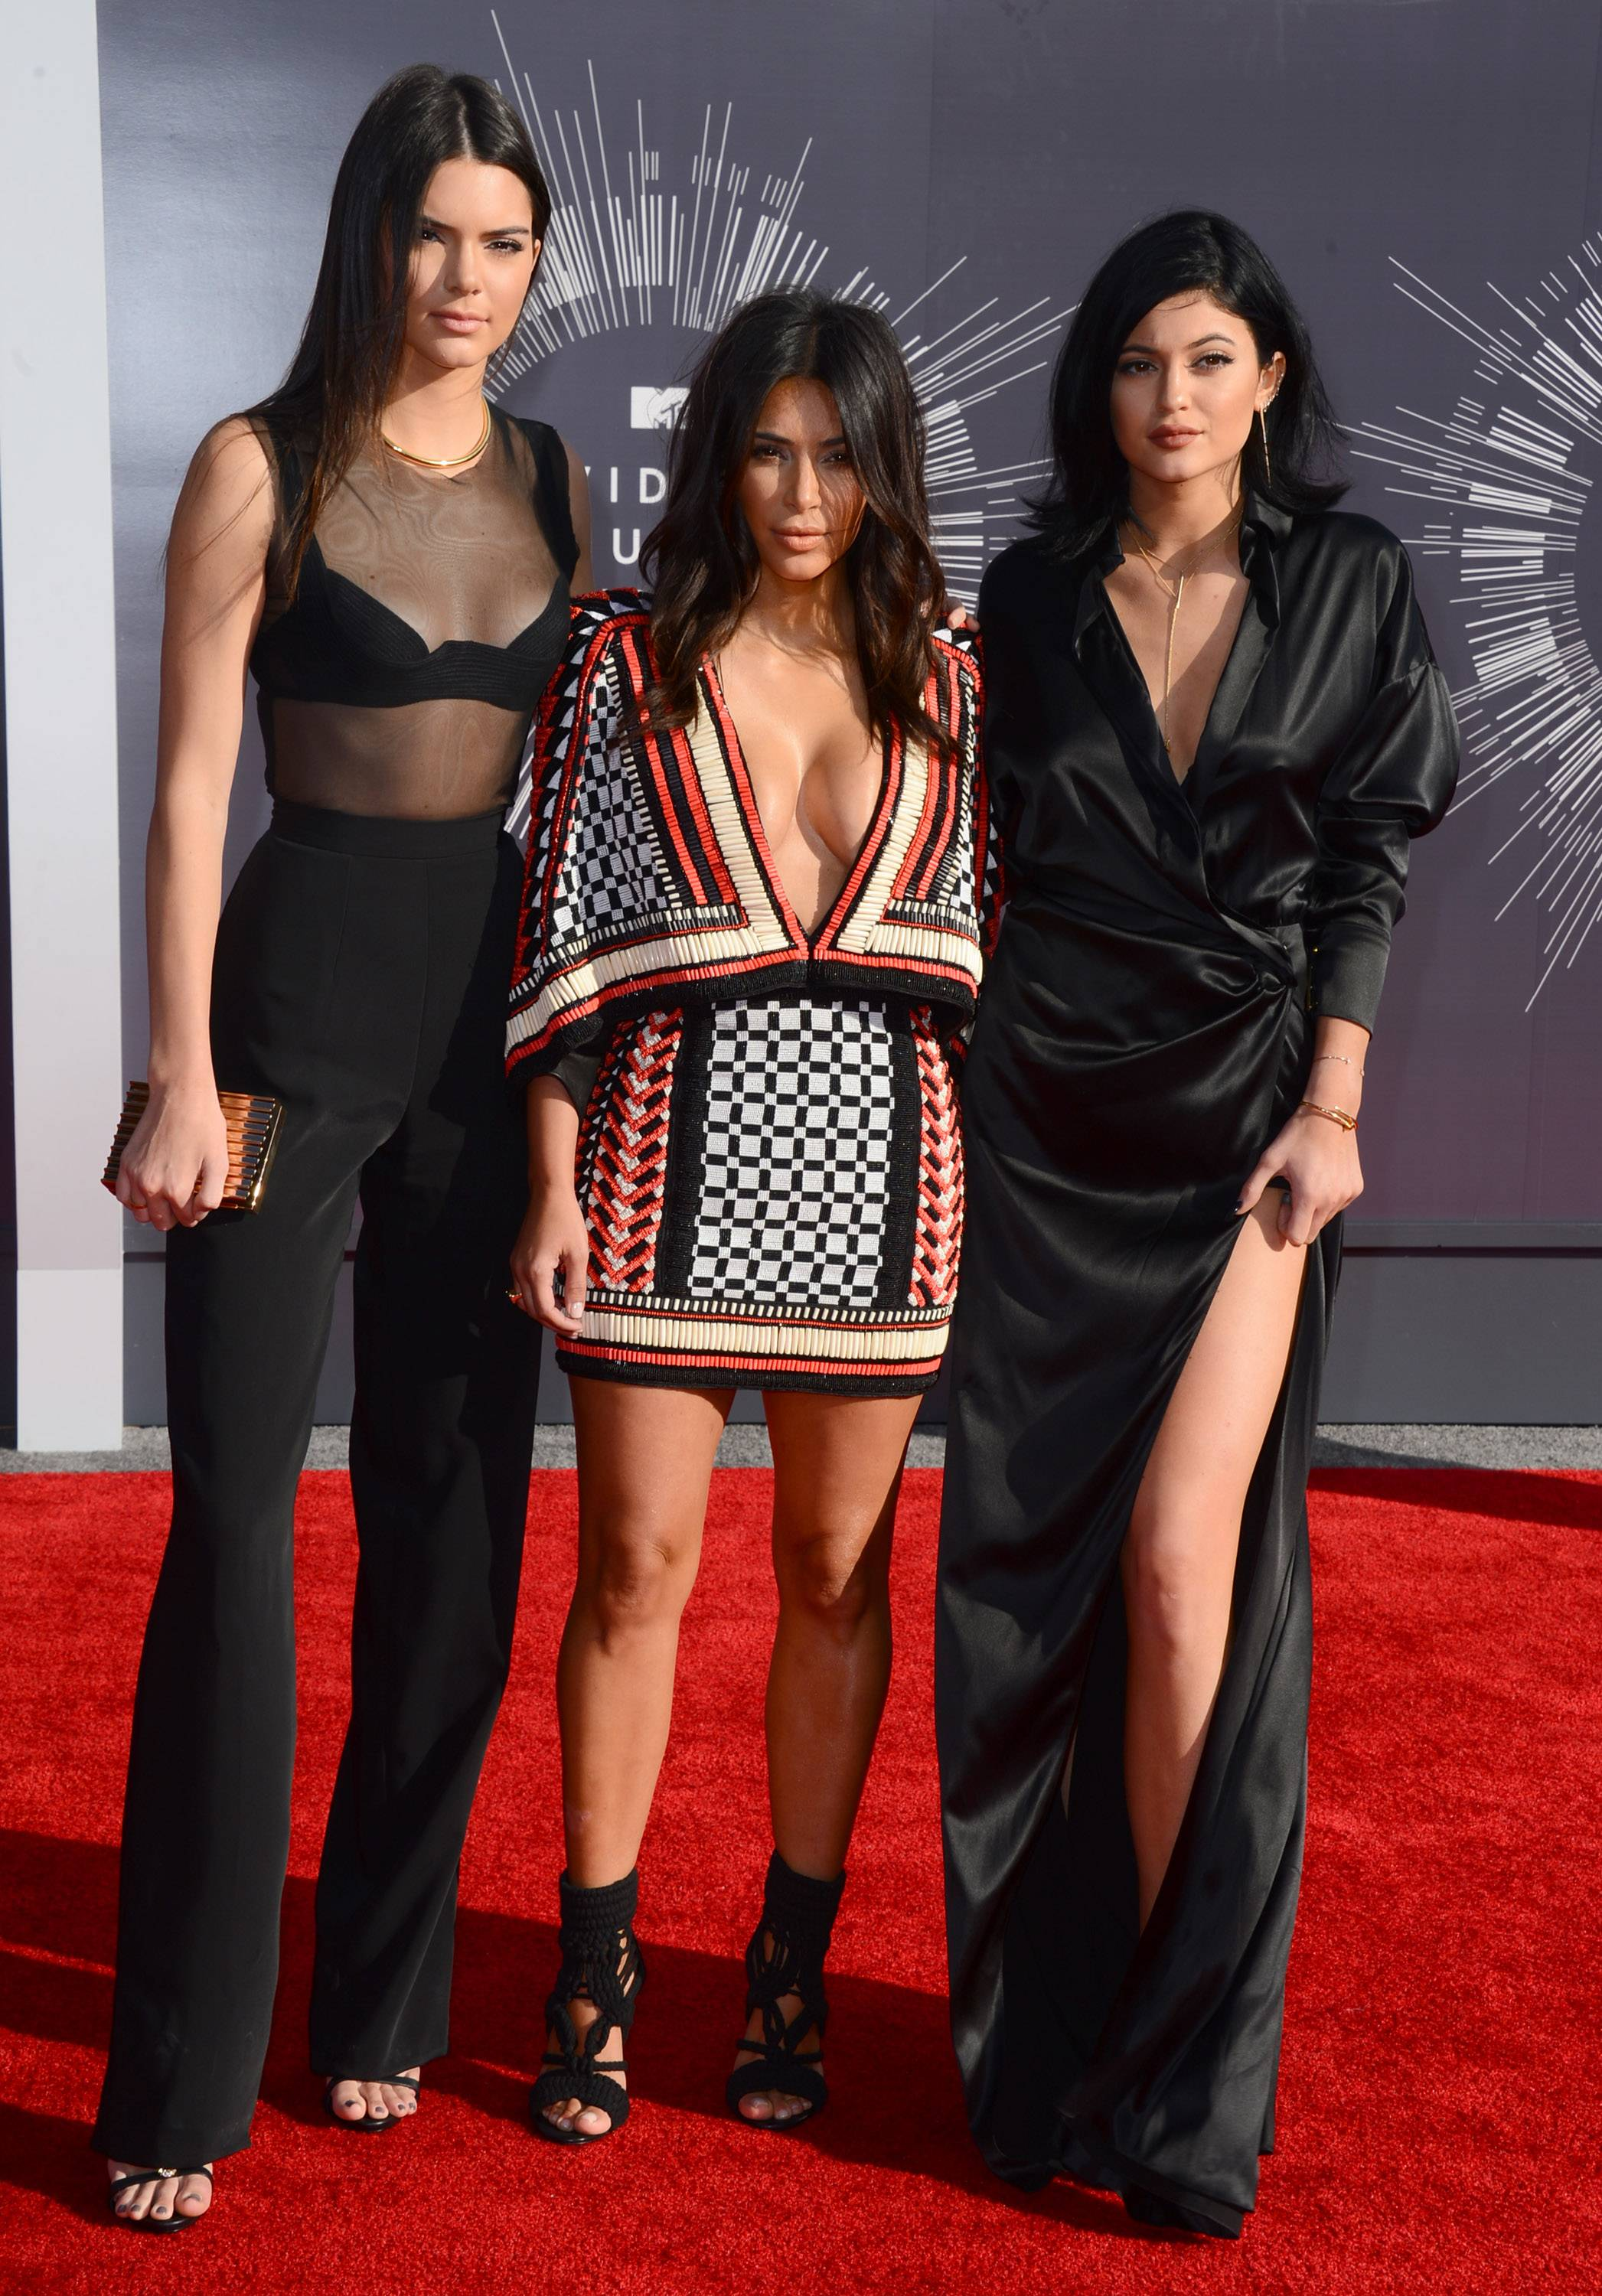 Kendall Jenner, from left, Kim Kardashian and Kylie Jenner arrive at the MTV Video Music Awards.